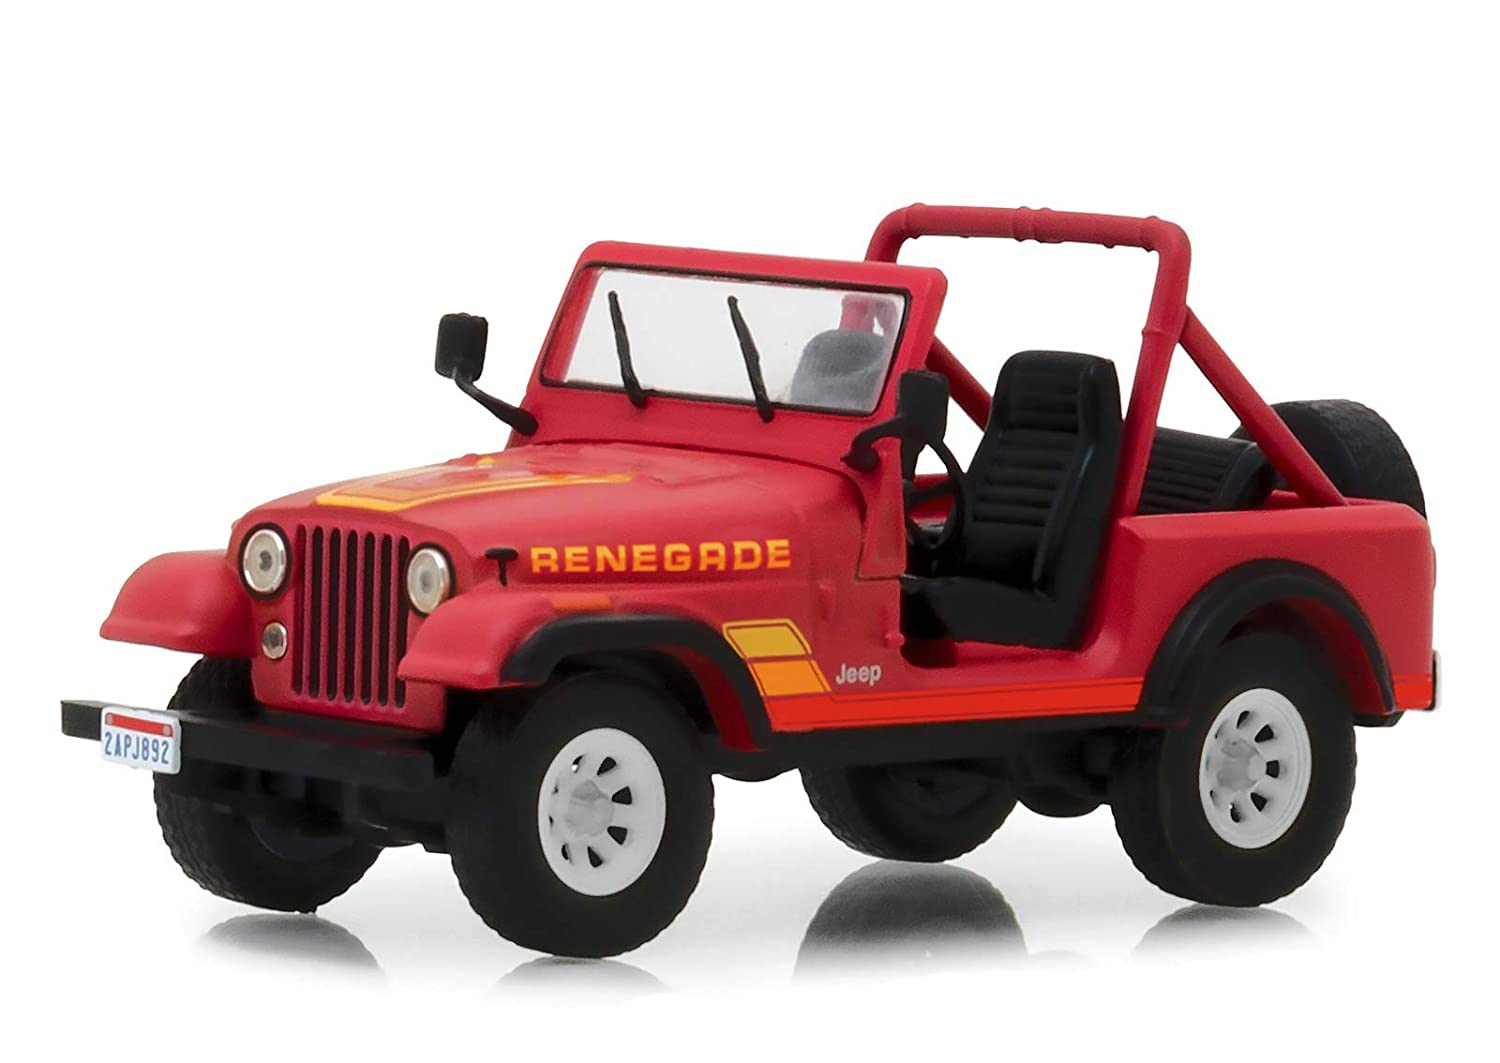 The Terminator True-to-Scale Detail Chrome Accents Real Rubber Tires Sarah Connors 1983 Jeep CJ-7 Renegade 1984 Authentic Movie Decoration Limited Edition